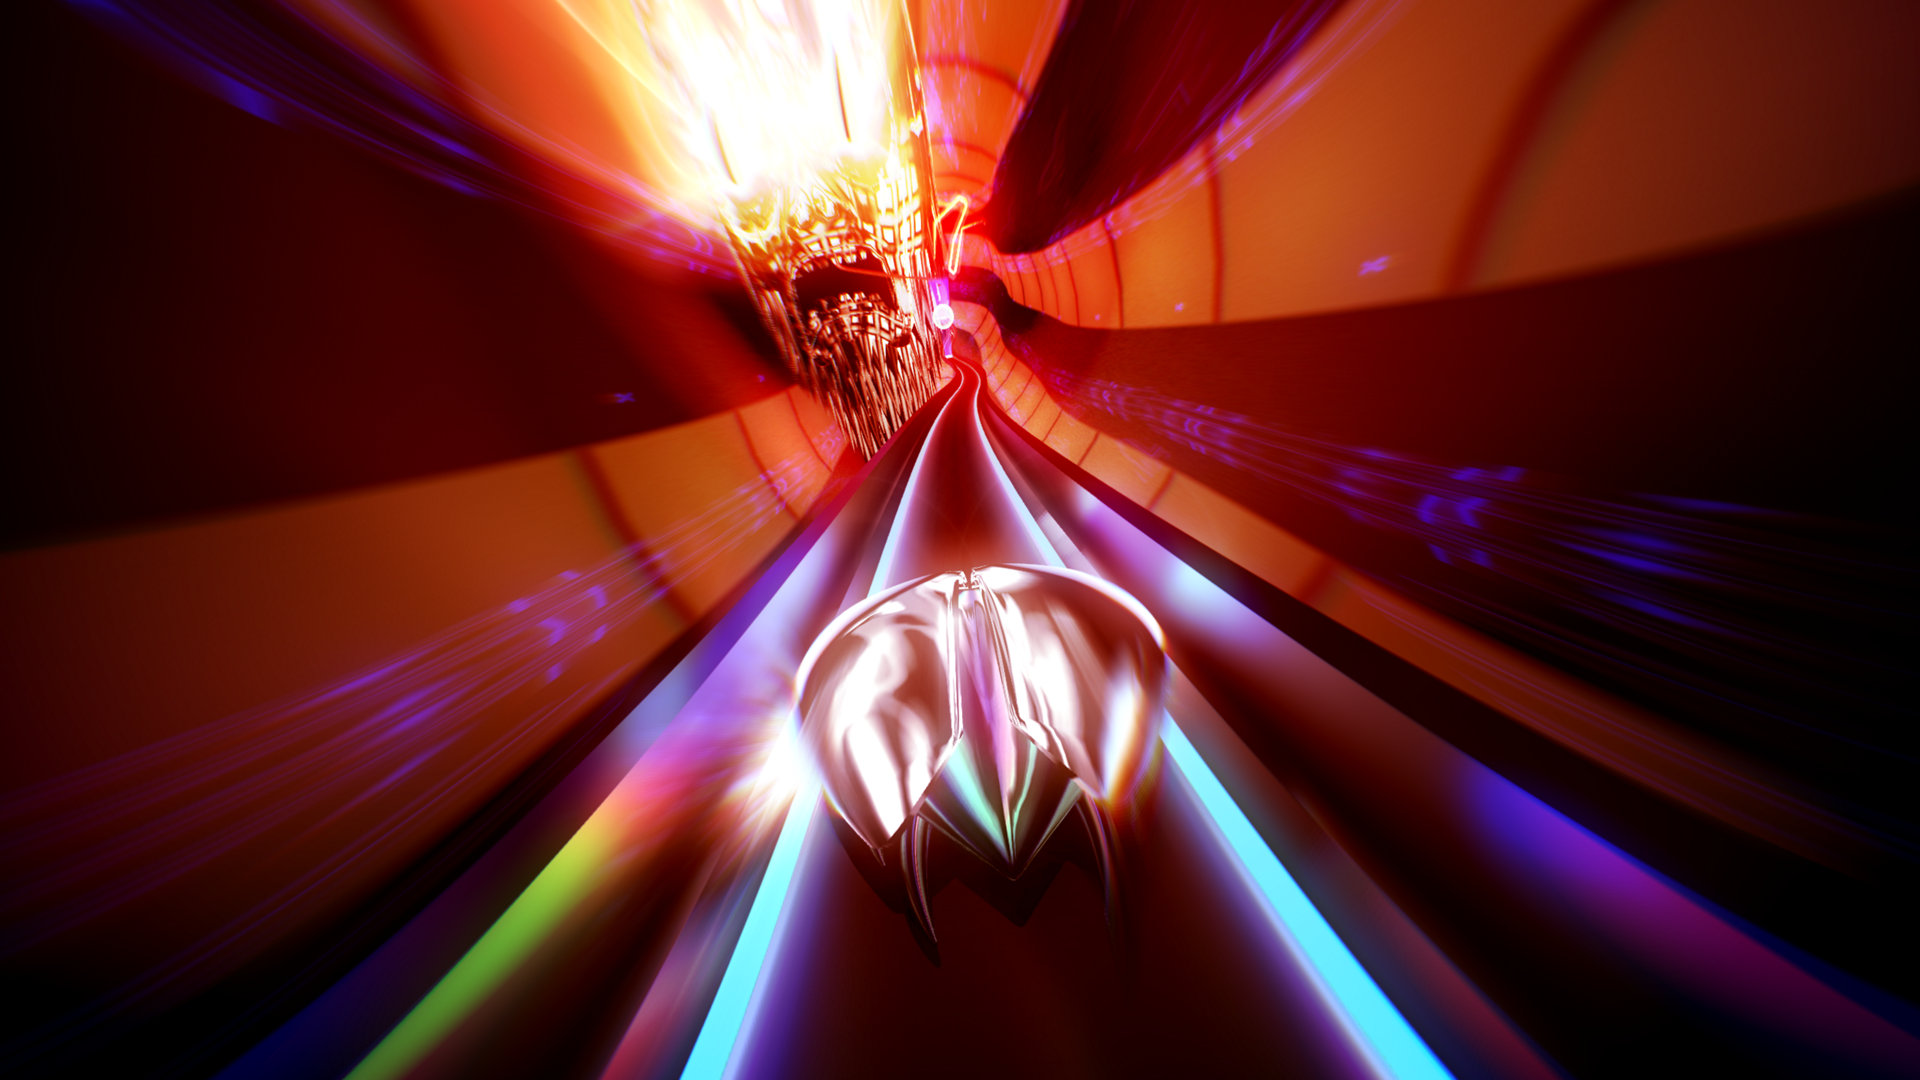 3138613-thumper-screenshot-crakhed1-ps4-us-5jun15